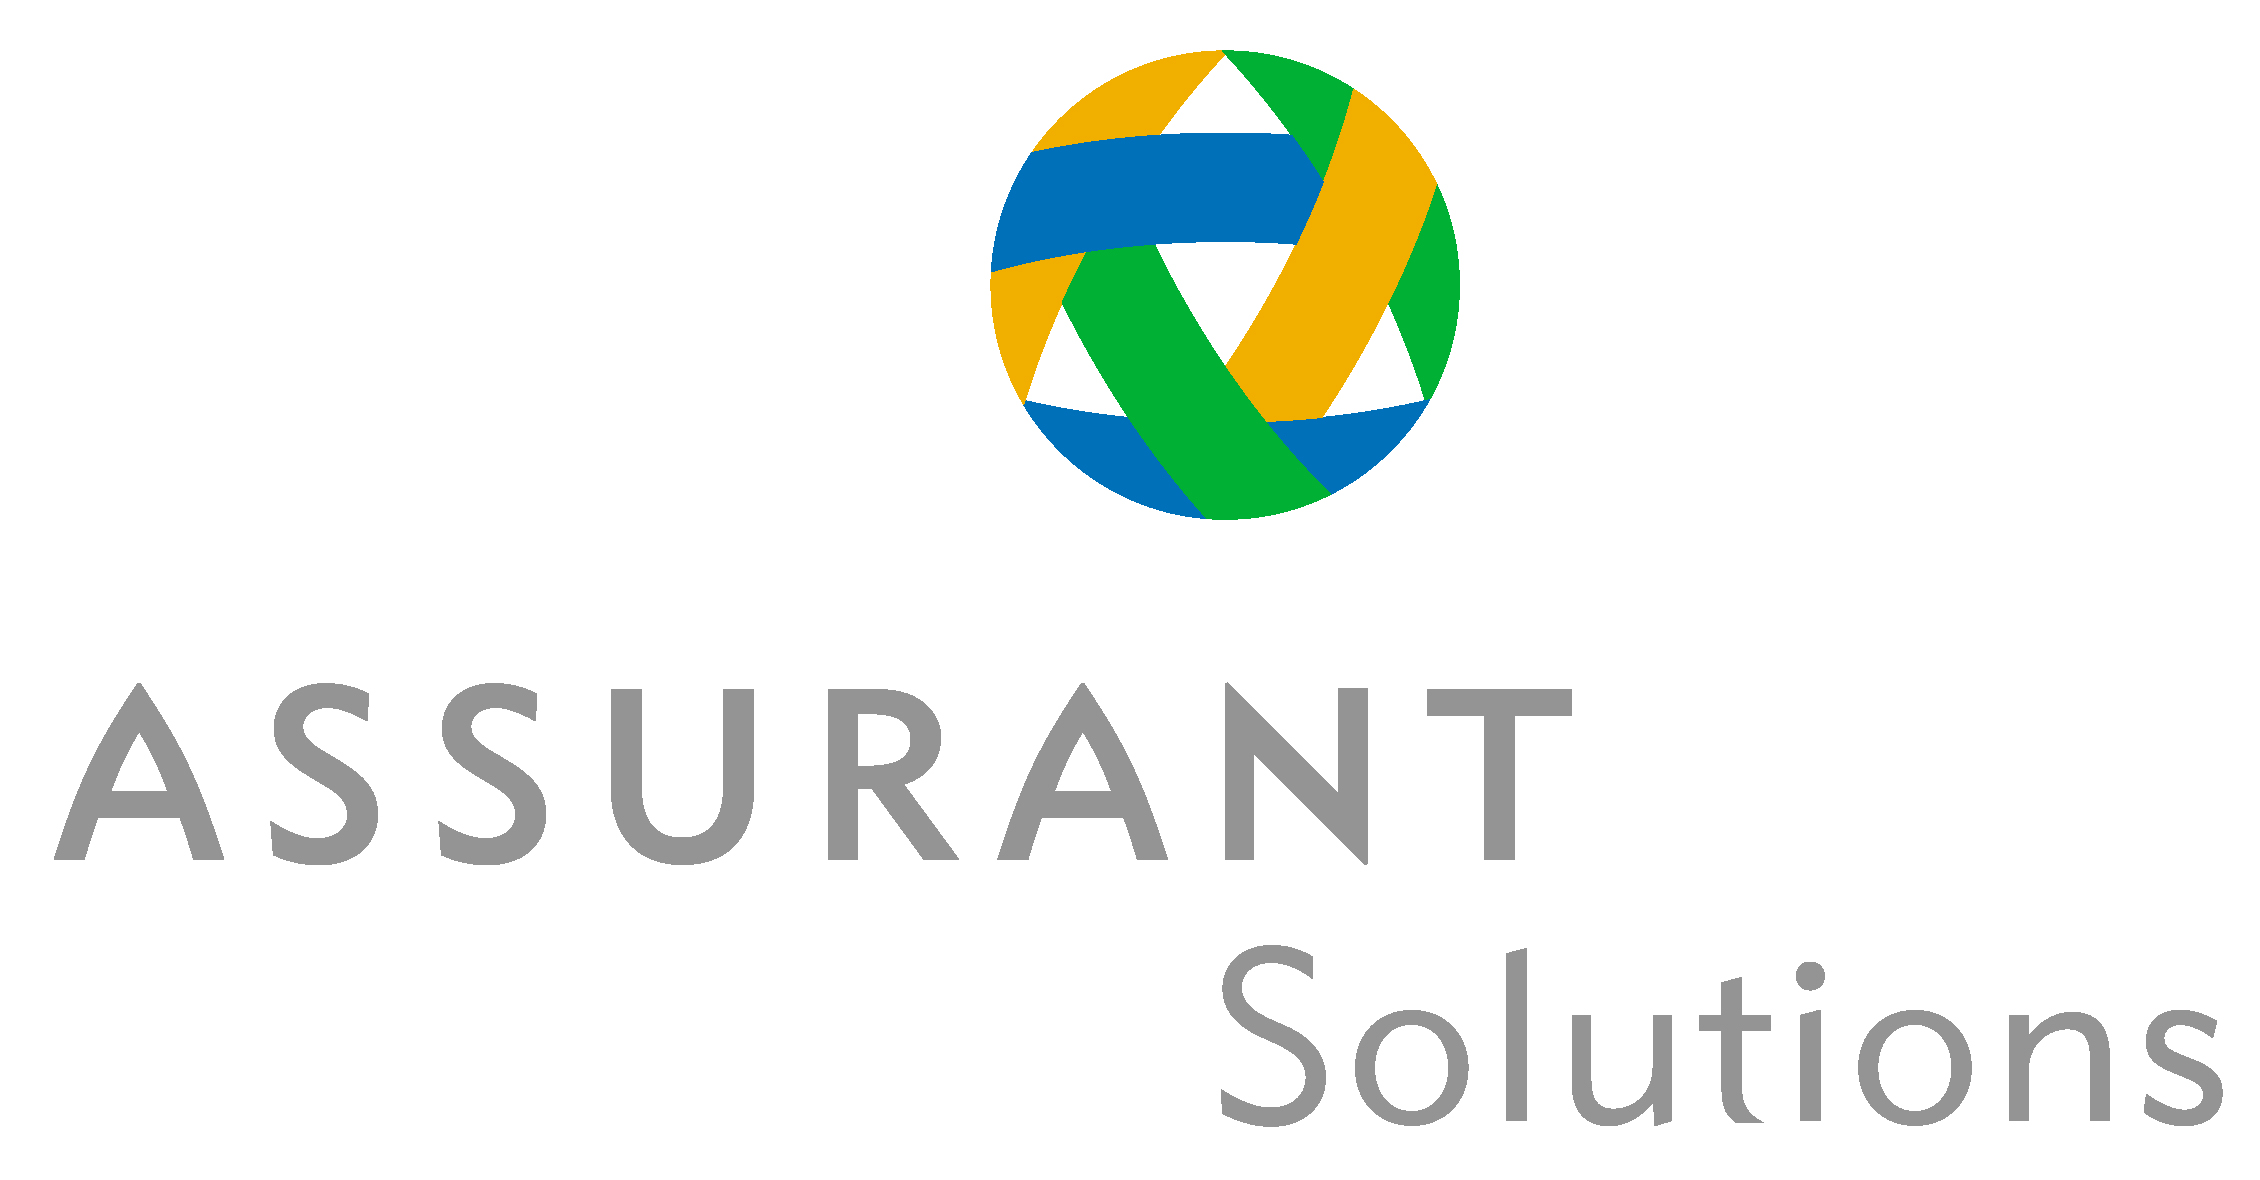 Assurant Solutions Extended Warranty for RVs